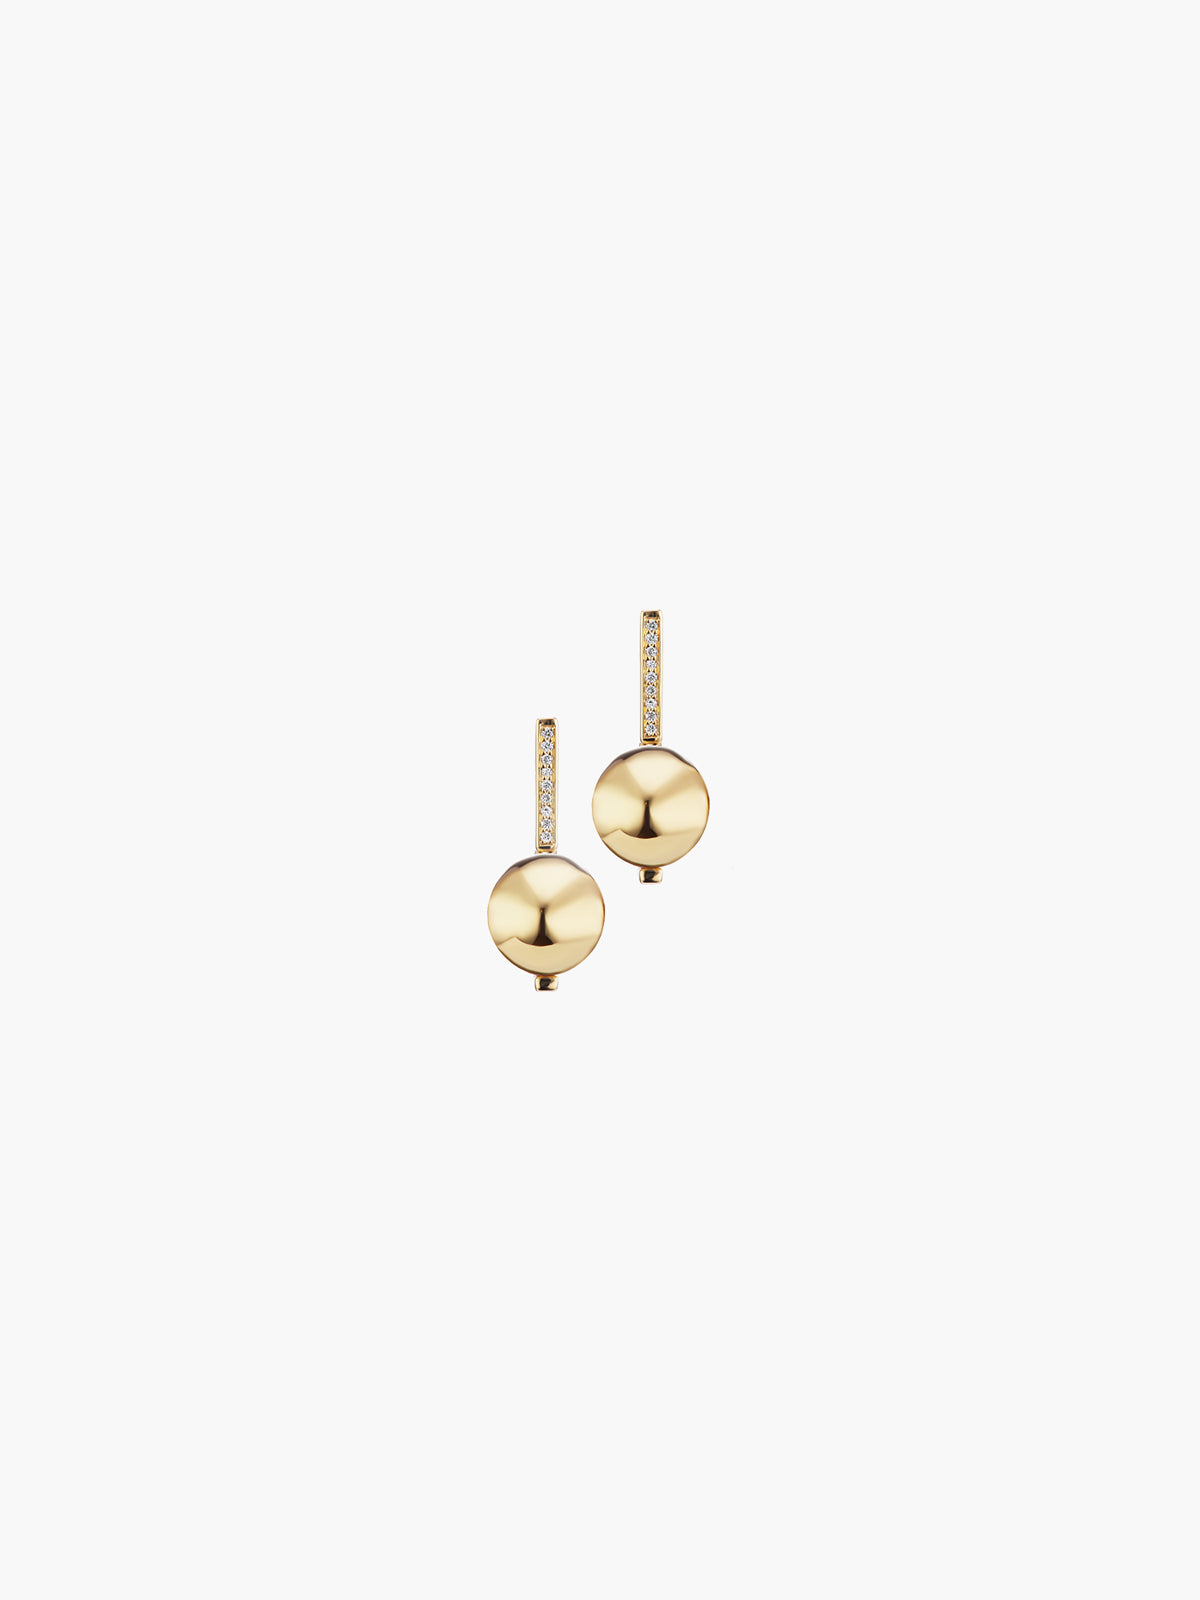 Boule D'Or Drop Earring | High Polish Boule D'Or Drop Earring | High Polish